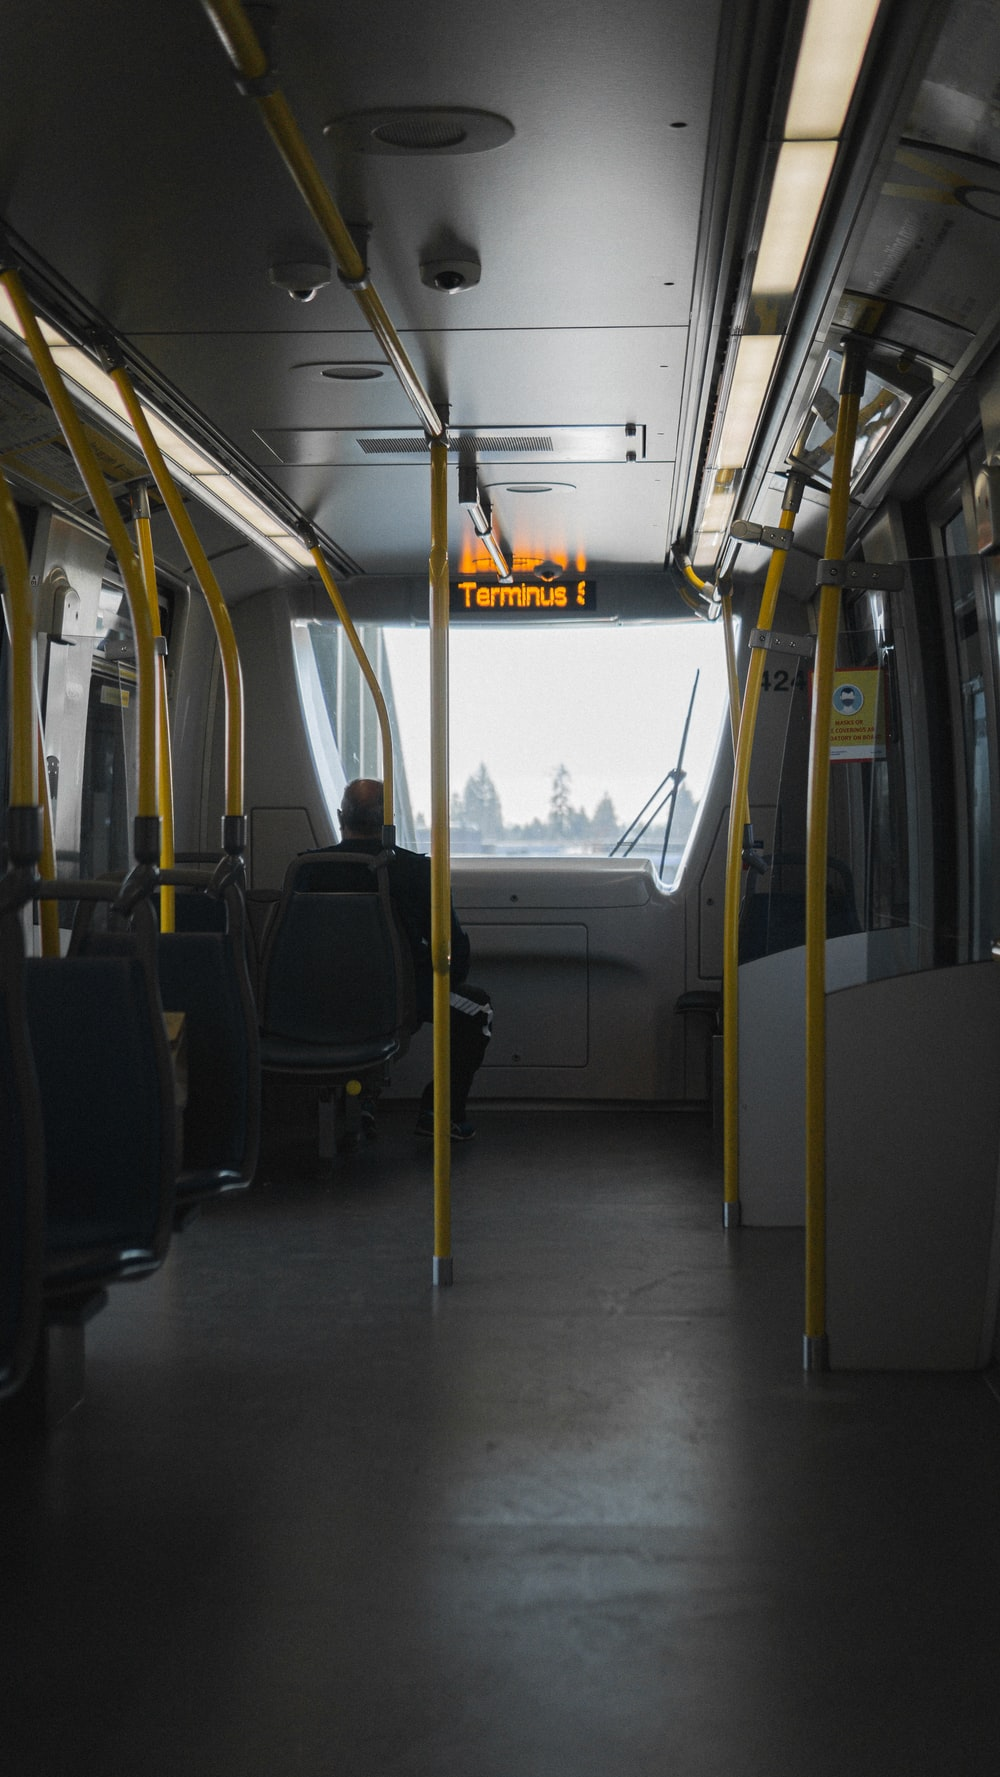 black and gray bus seats